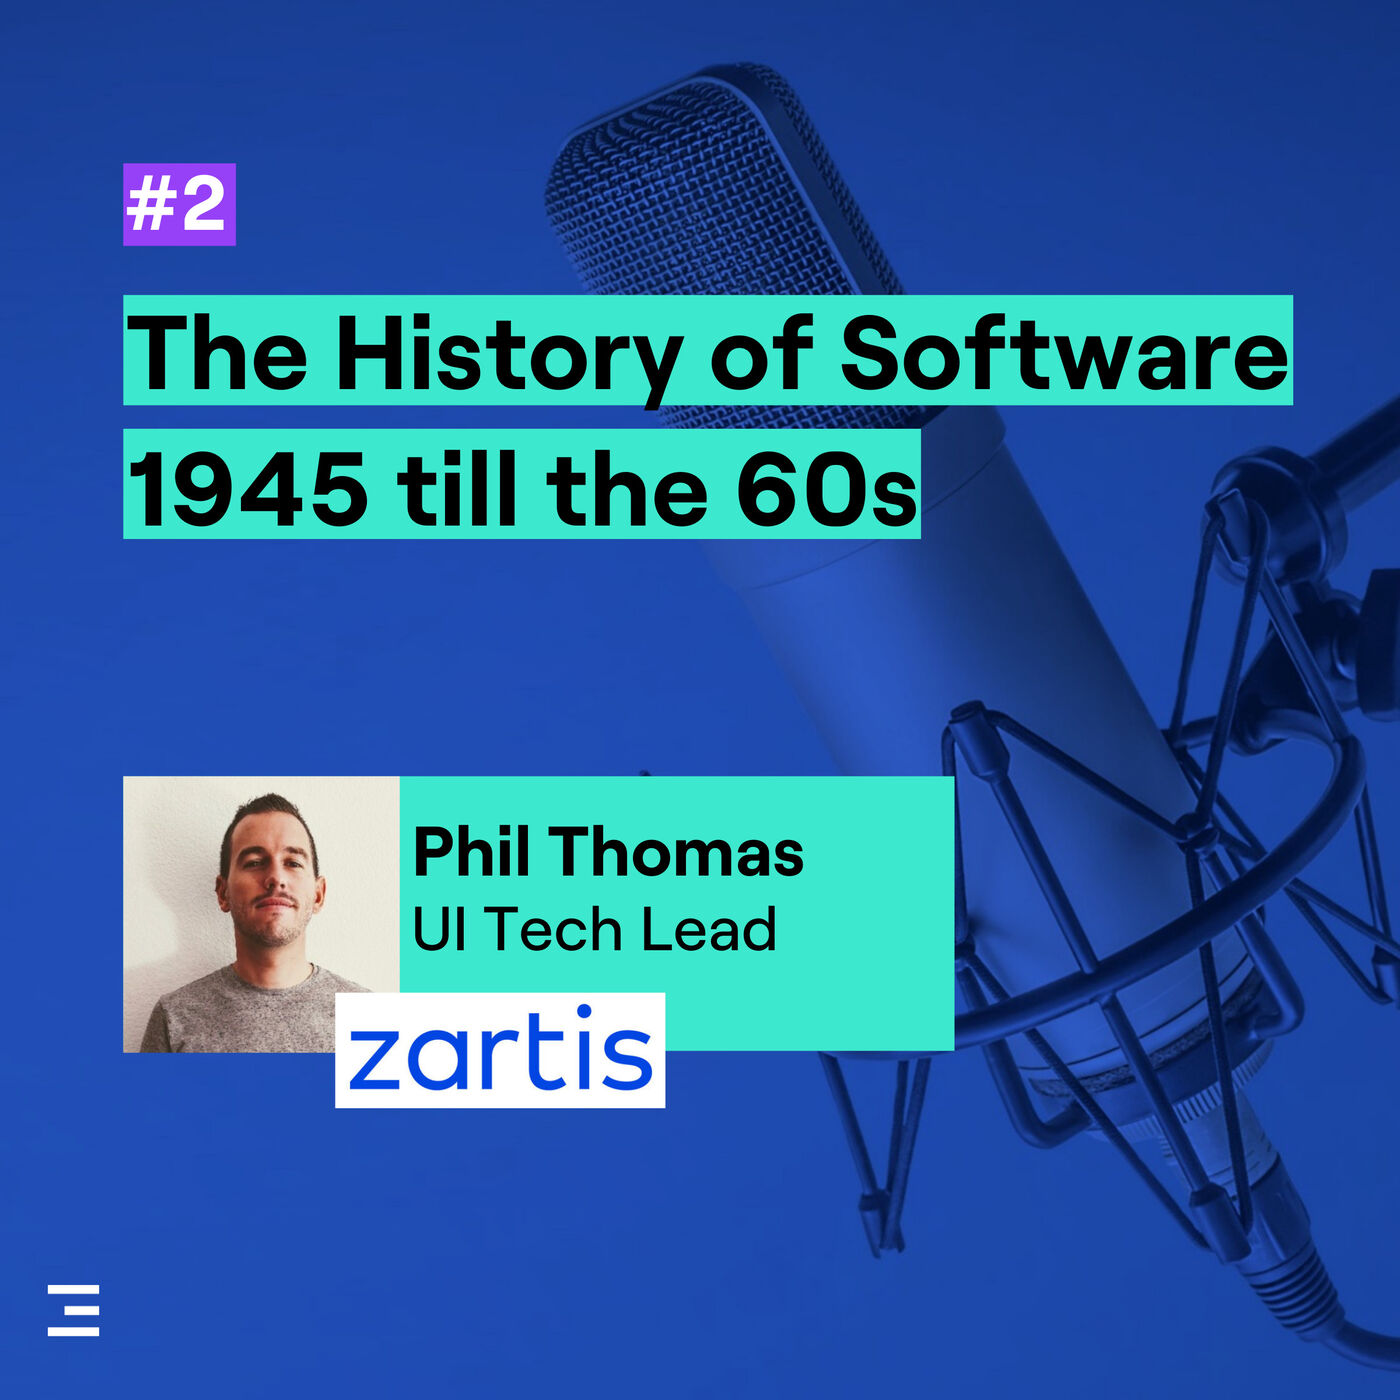 2. 1945 till the 60s - First Programming Languages, Supercomputers and the Space Race